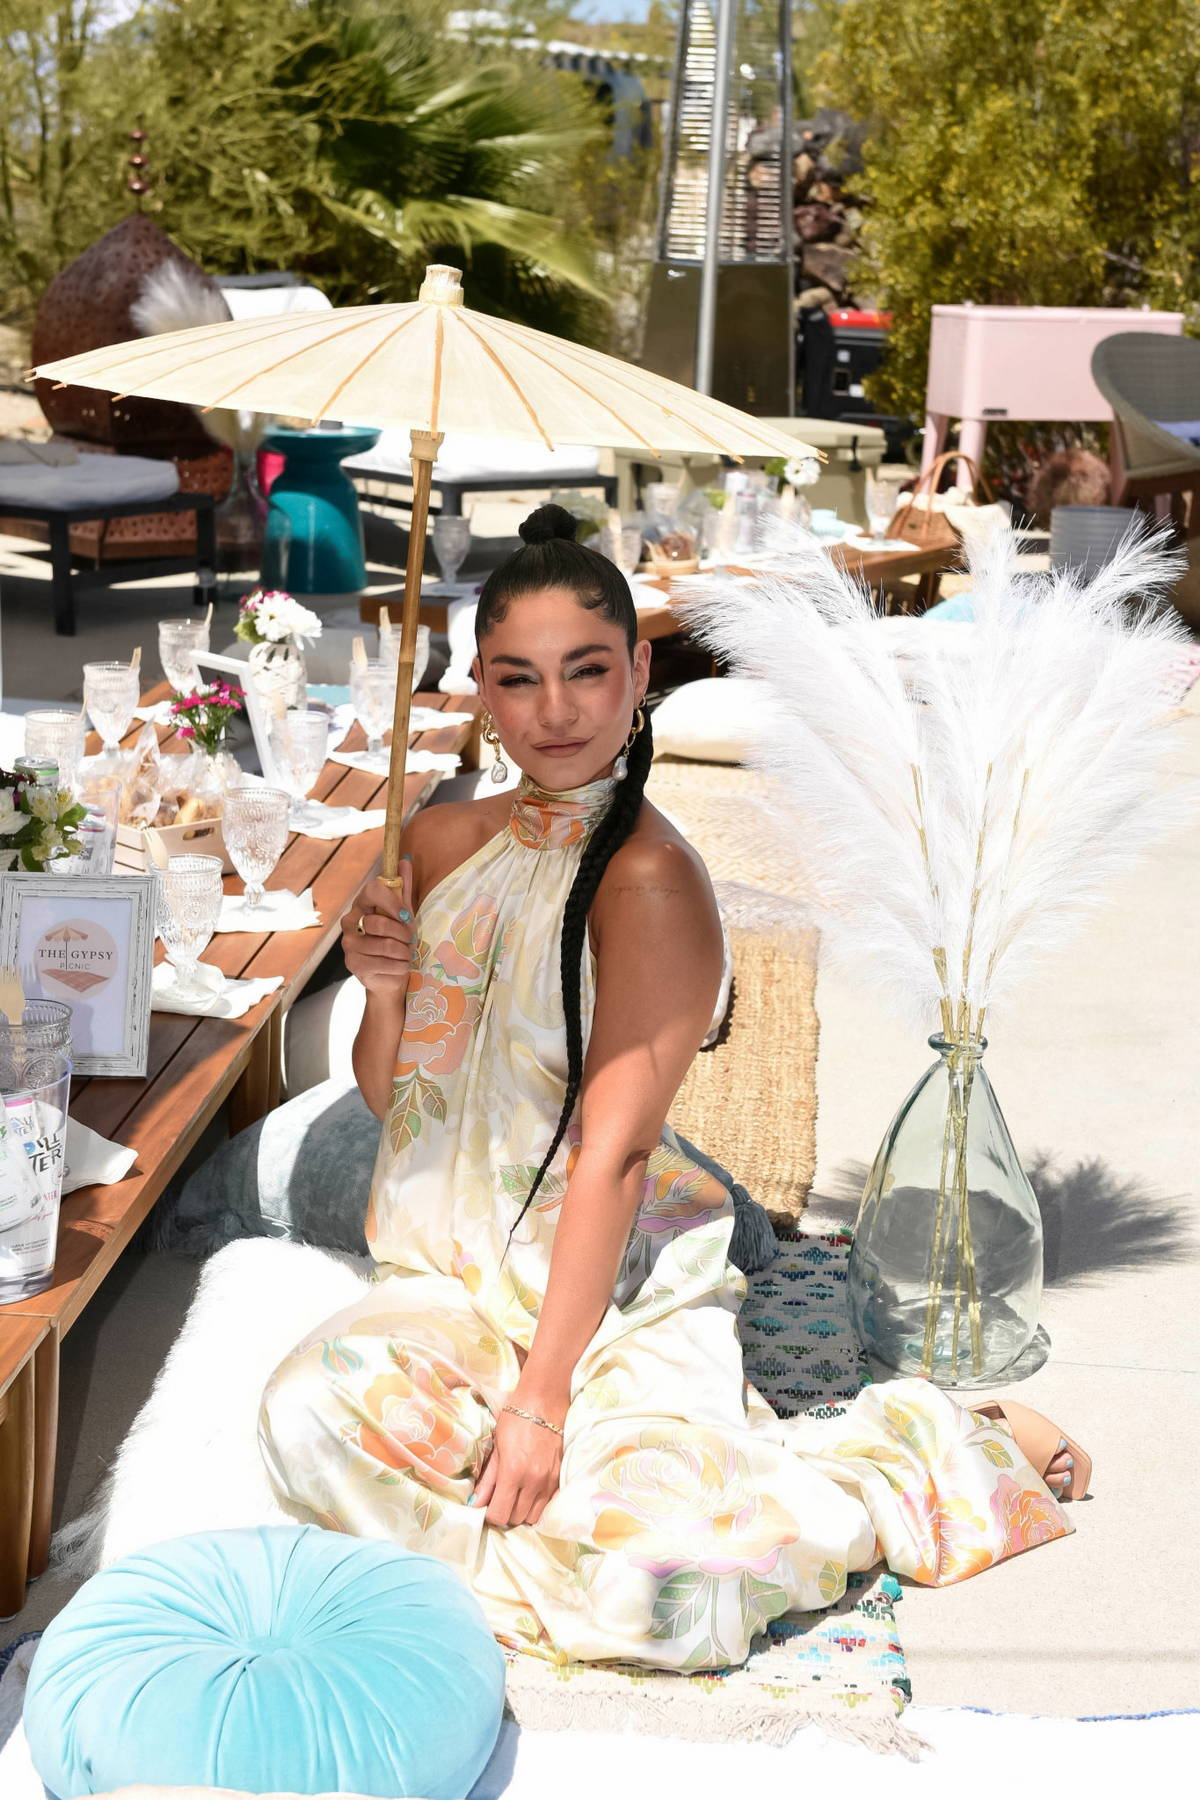 Vanessa Hudgens attends Caliwater Escape at the Mojave Moon Ranch in Joshua Tree, California